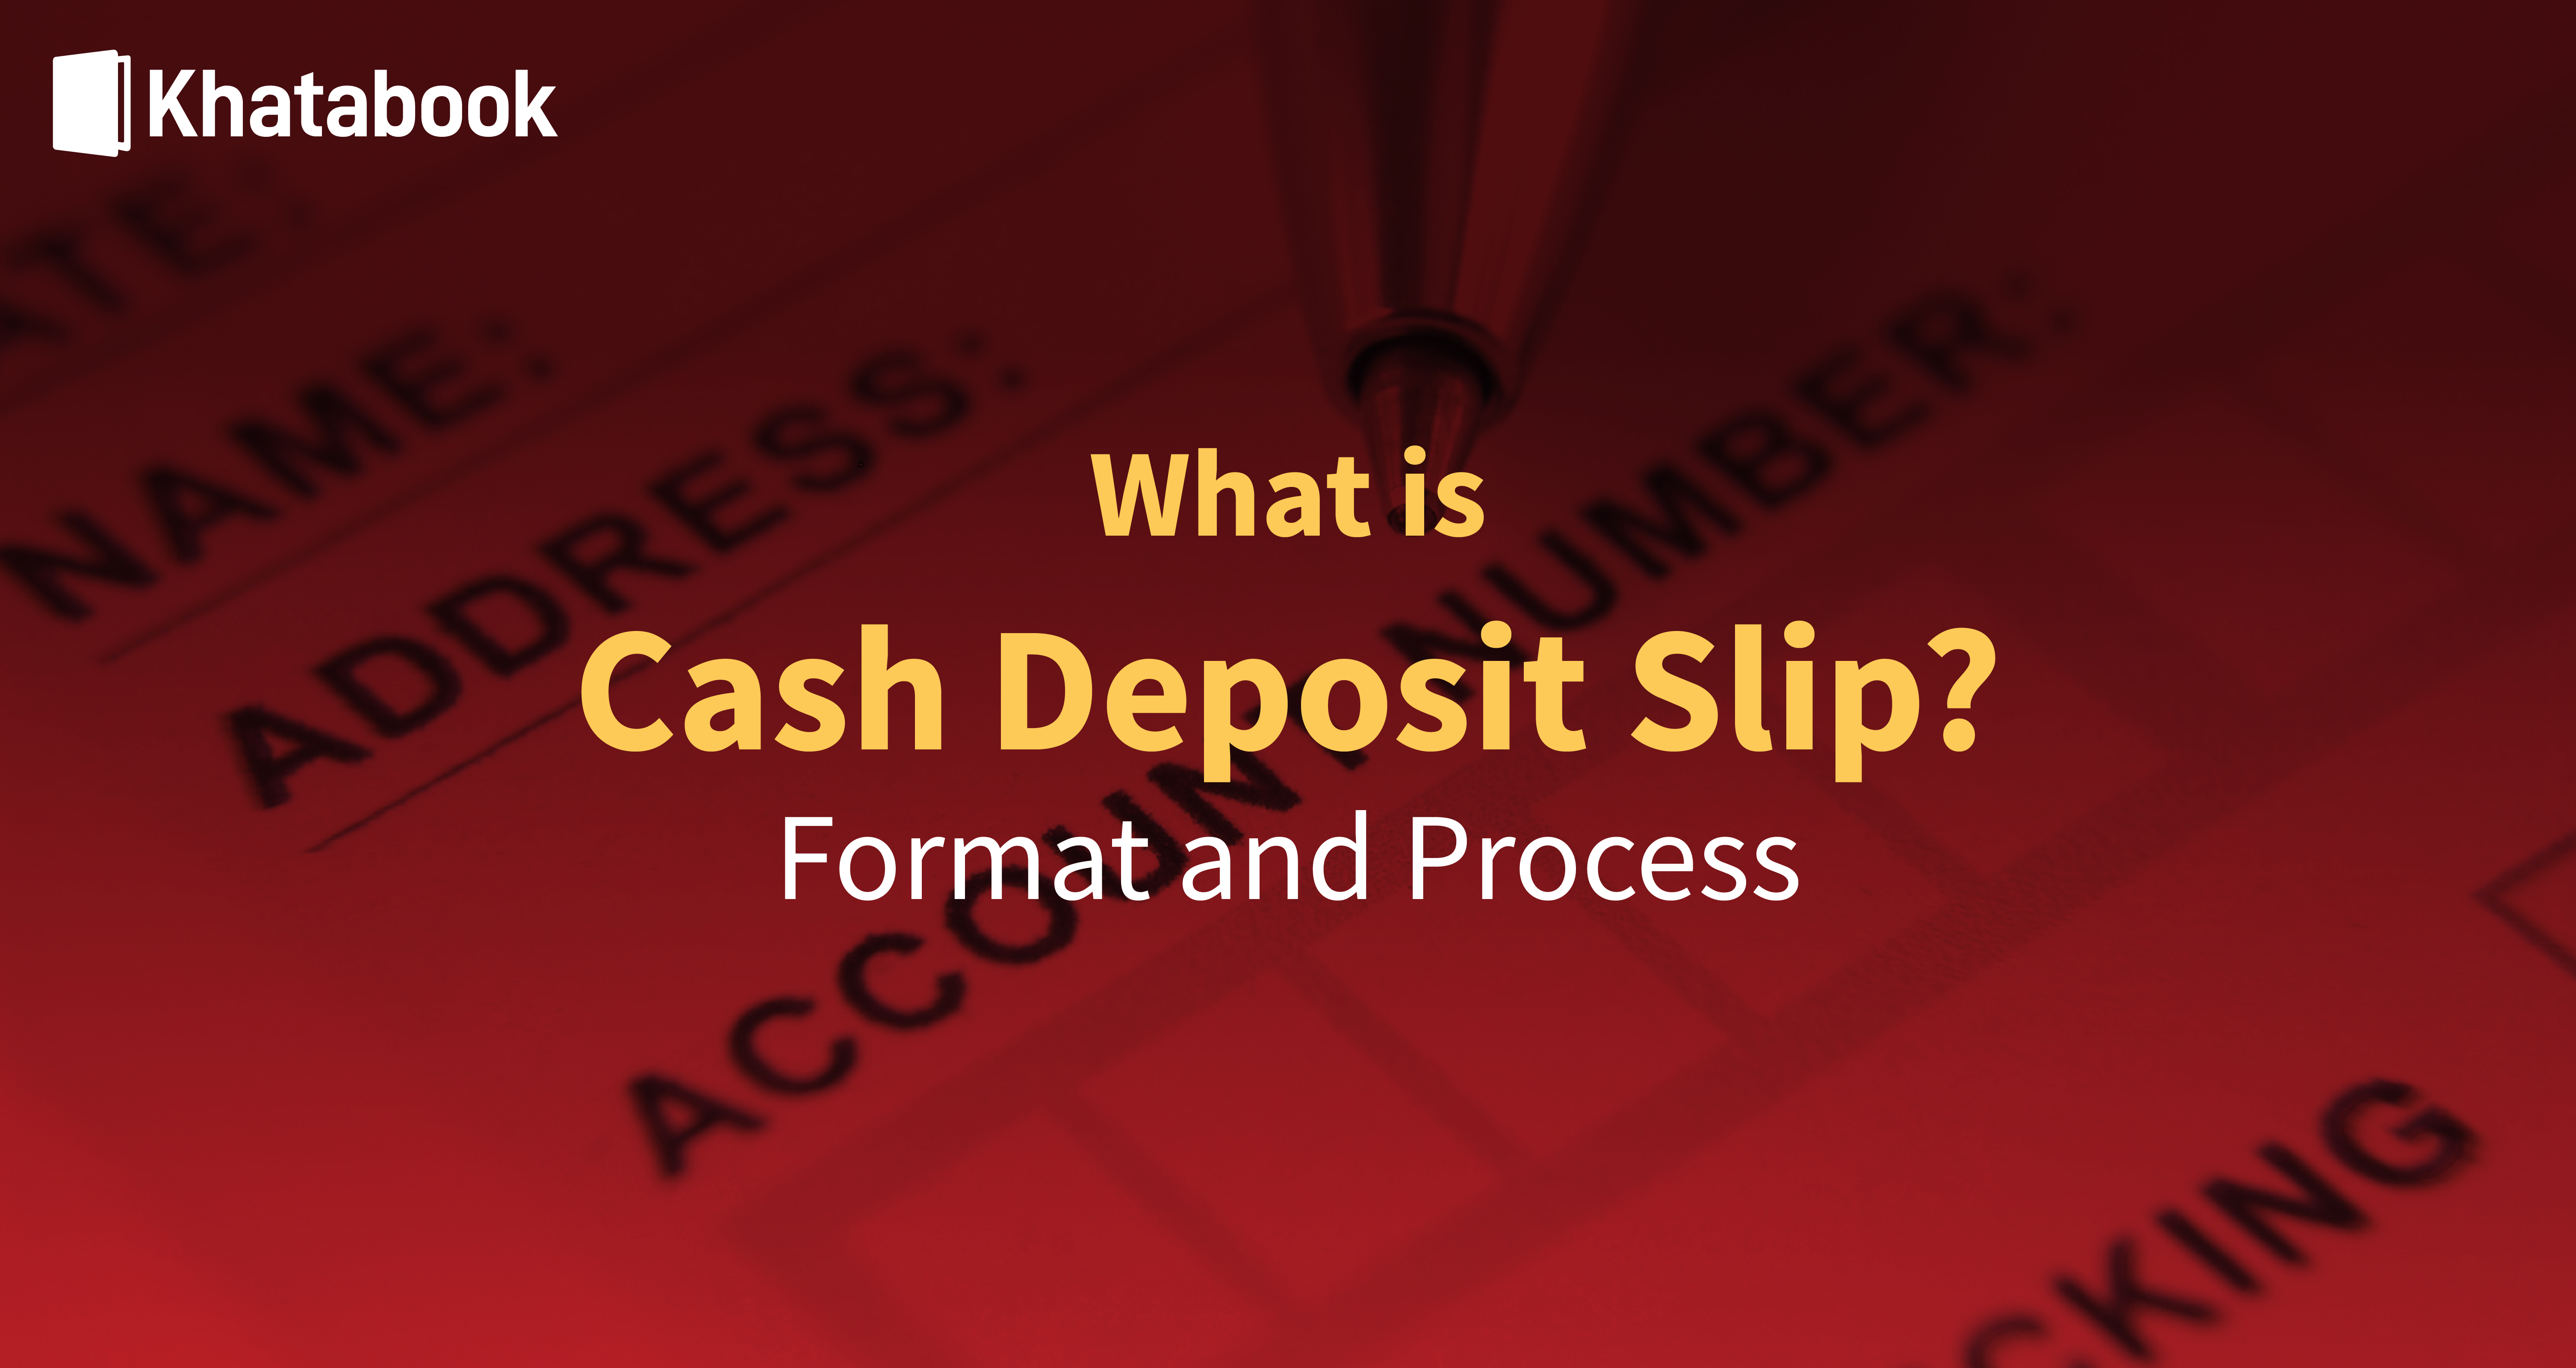 All You Need To Know About Cash Deposit Slip